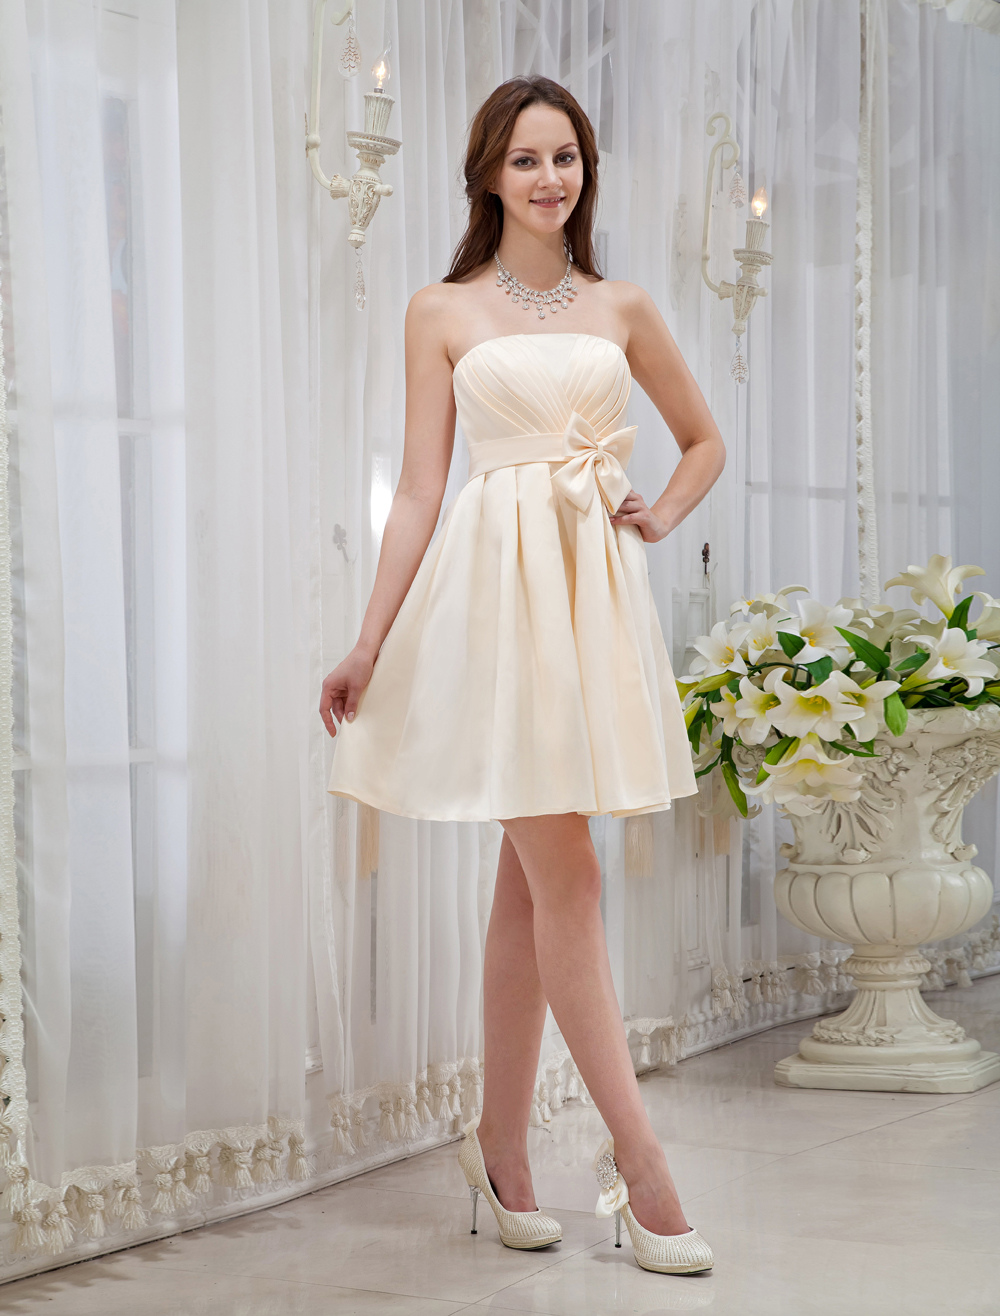 Gold Champagne Bow Knee Length Strapless Satin Bridesmaid Dress